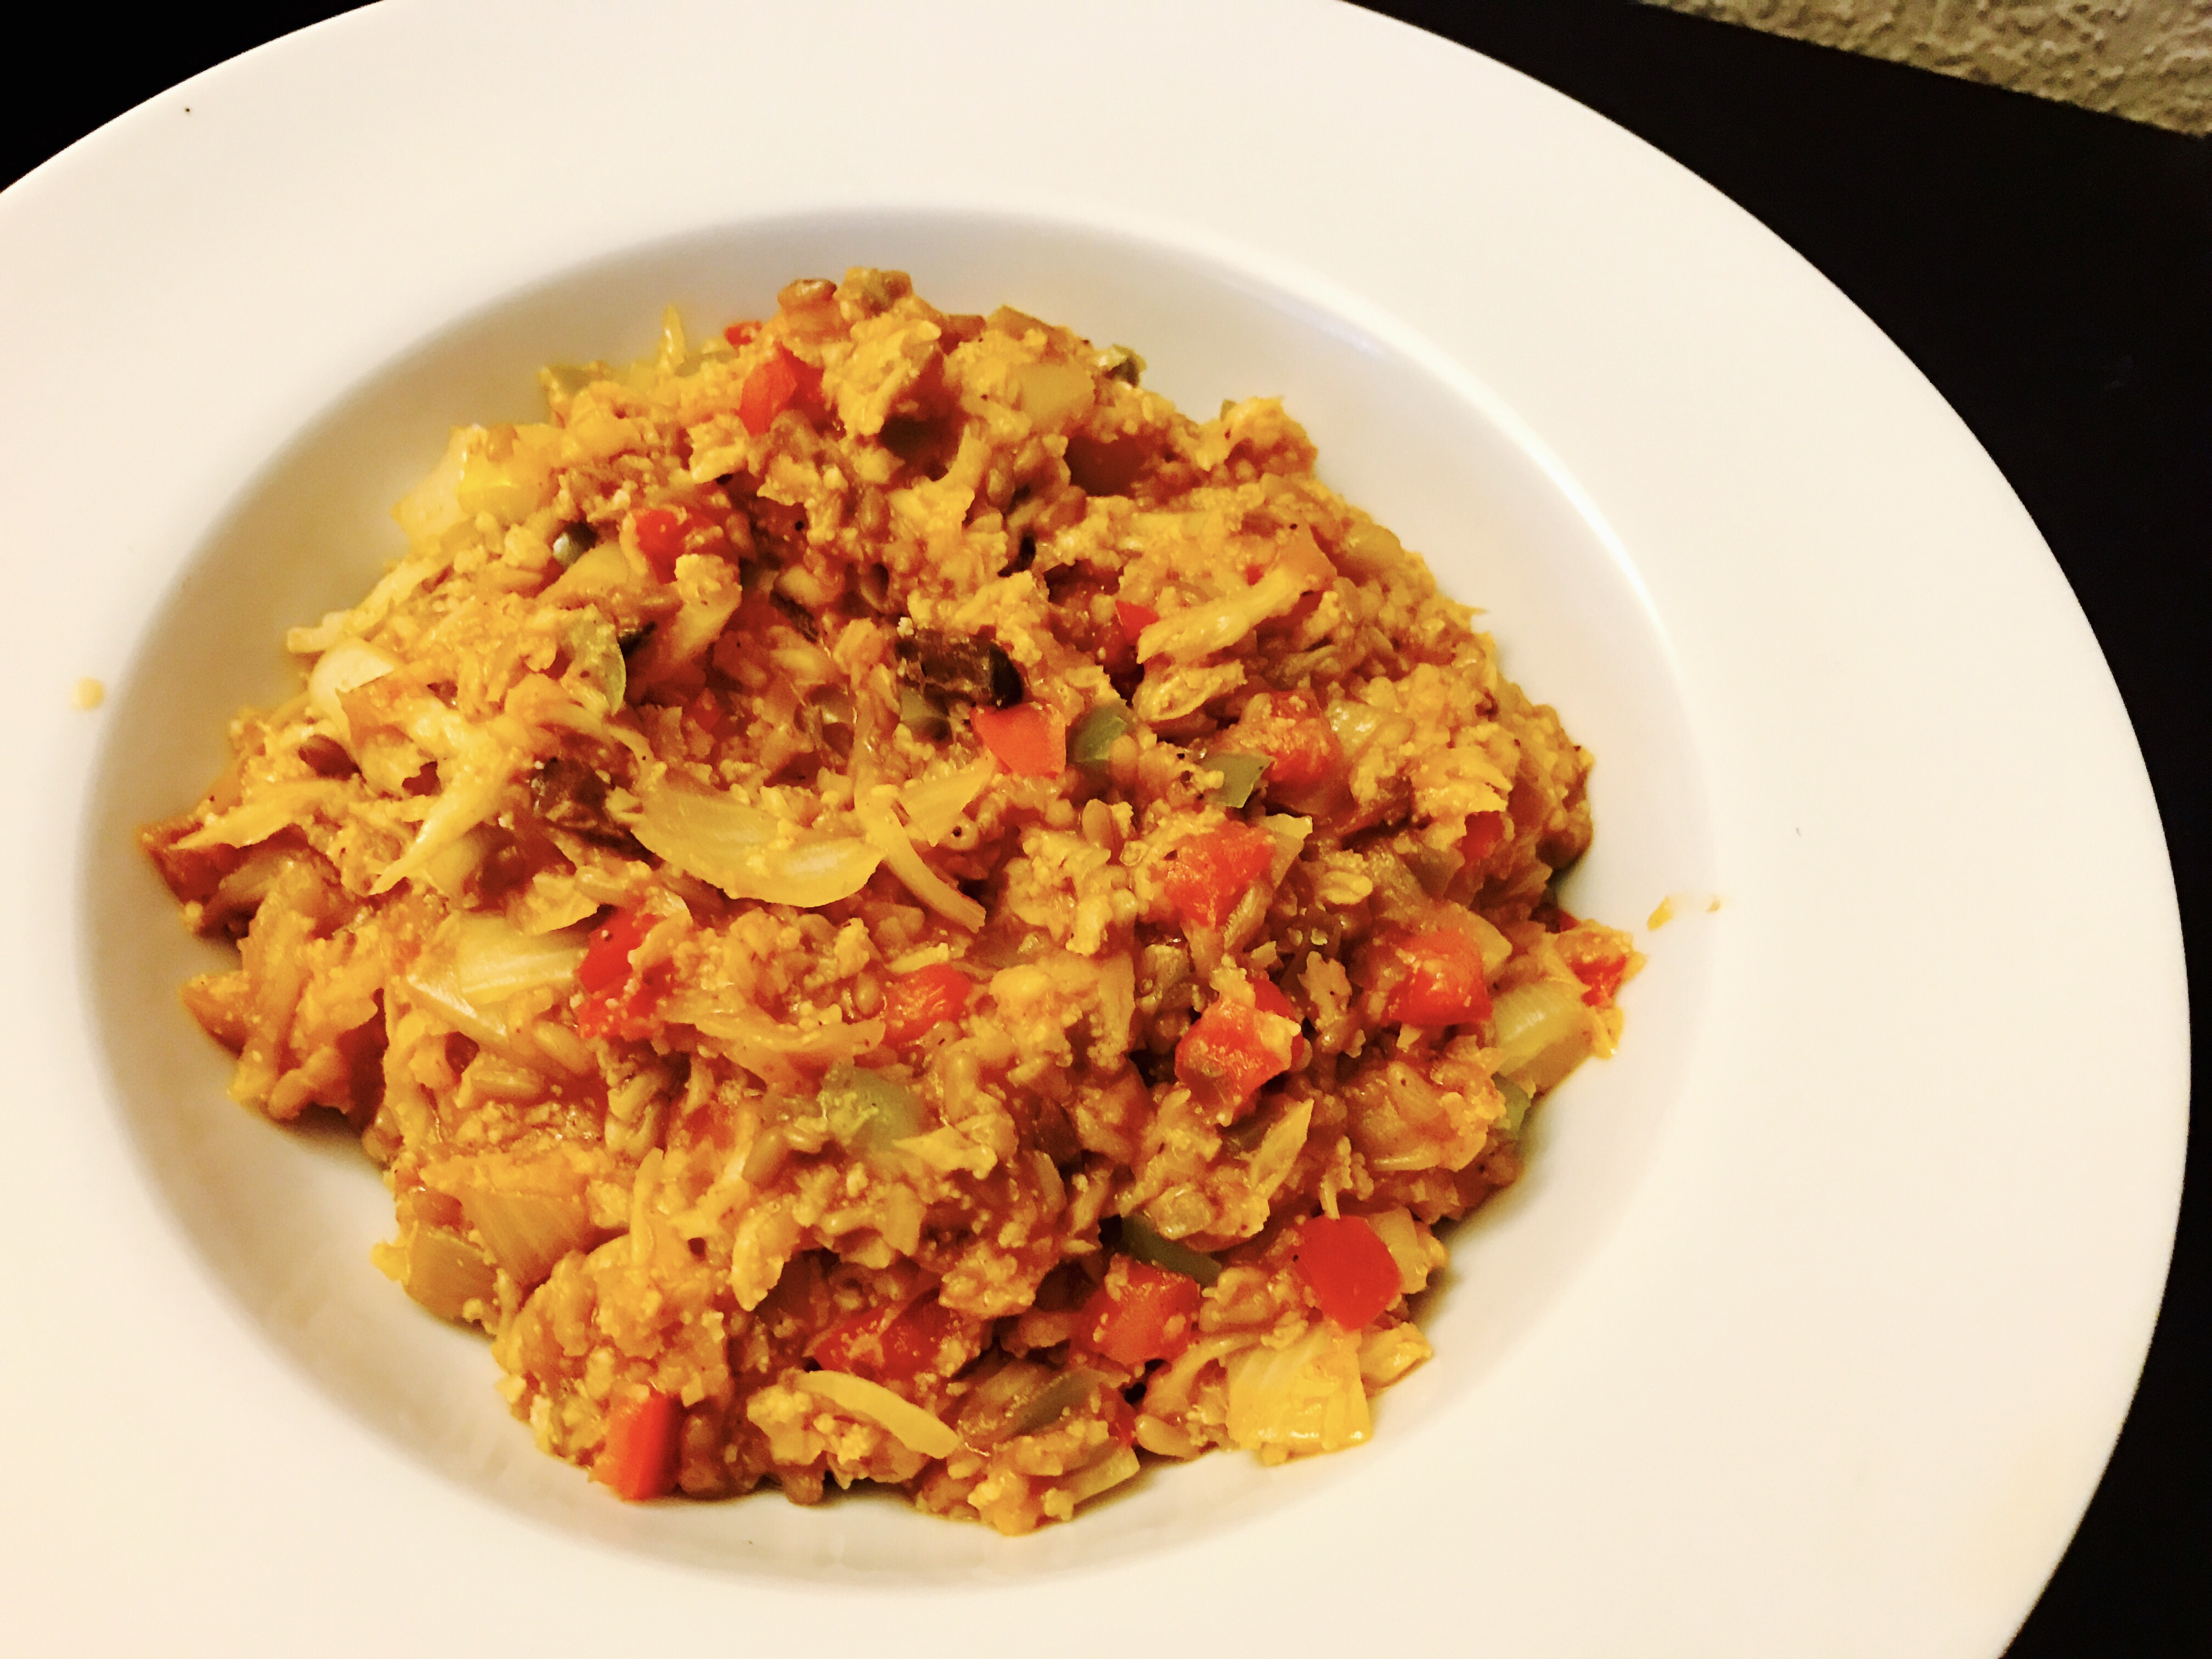 Bulking up the hmr diet chicken creole entree healthy solutions this one is short and easy but so good i had to share and while you can grate cauliflower or run it through a food processor to get that rice texture forumfinder Gallery